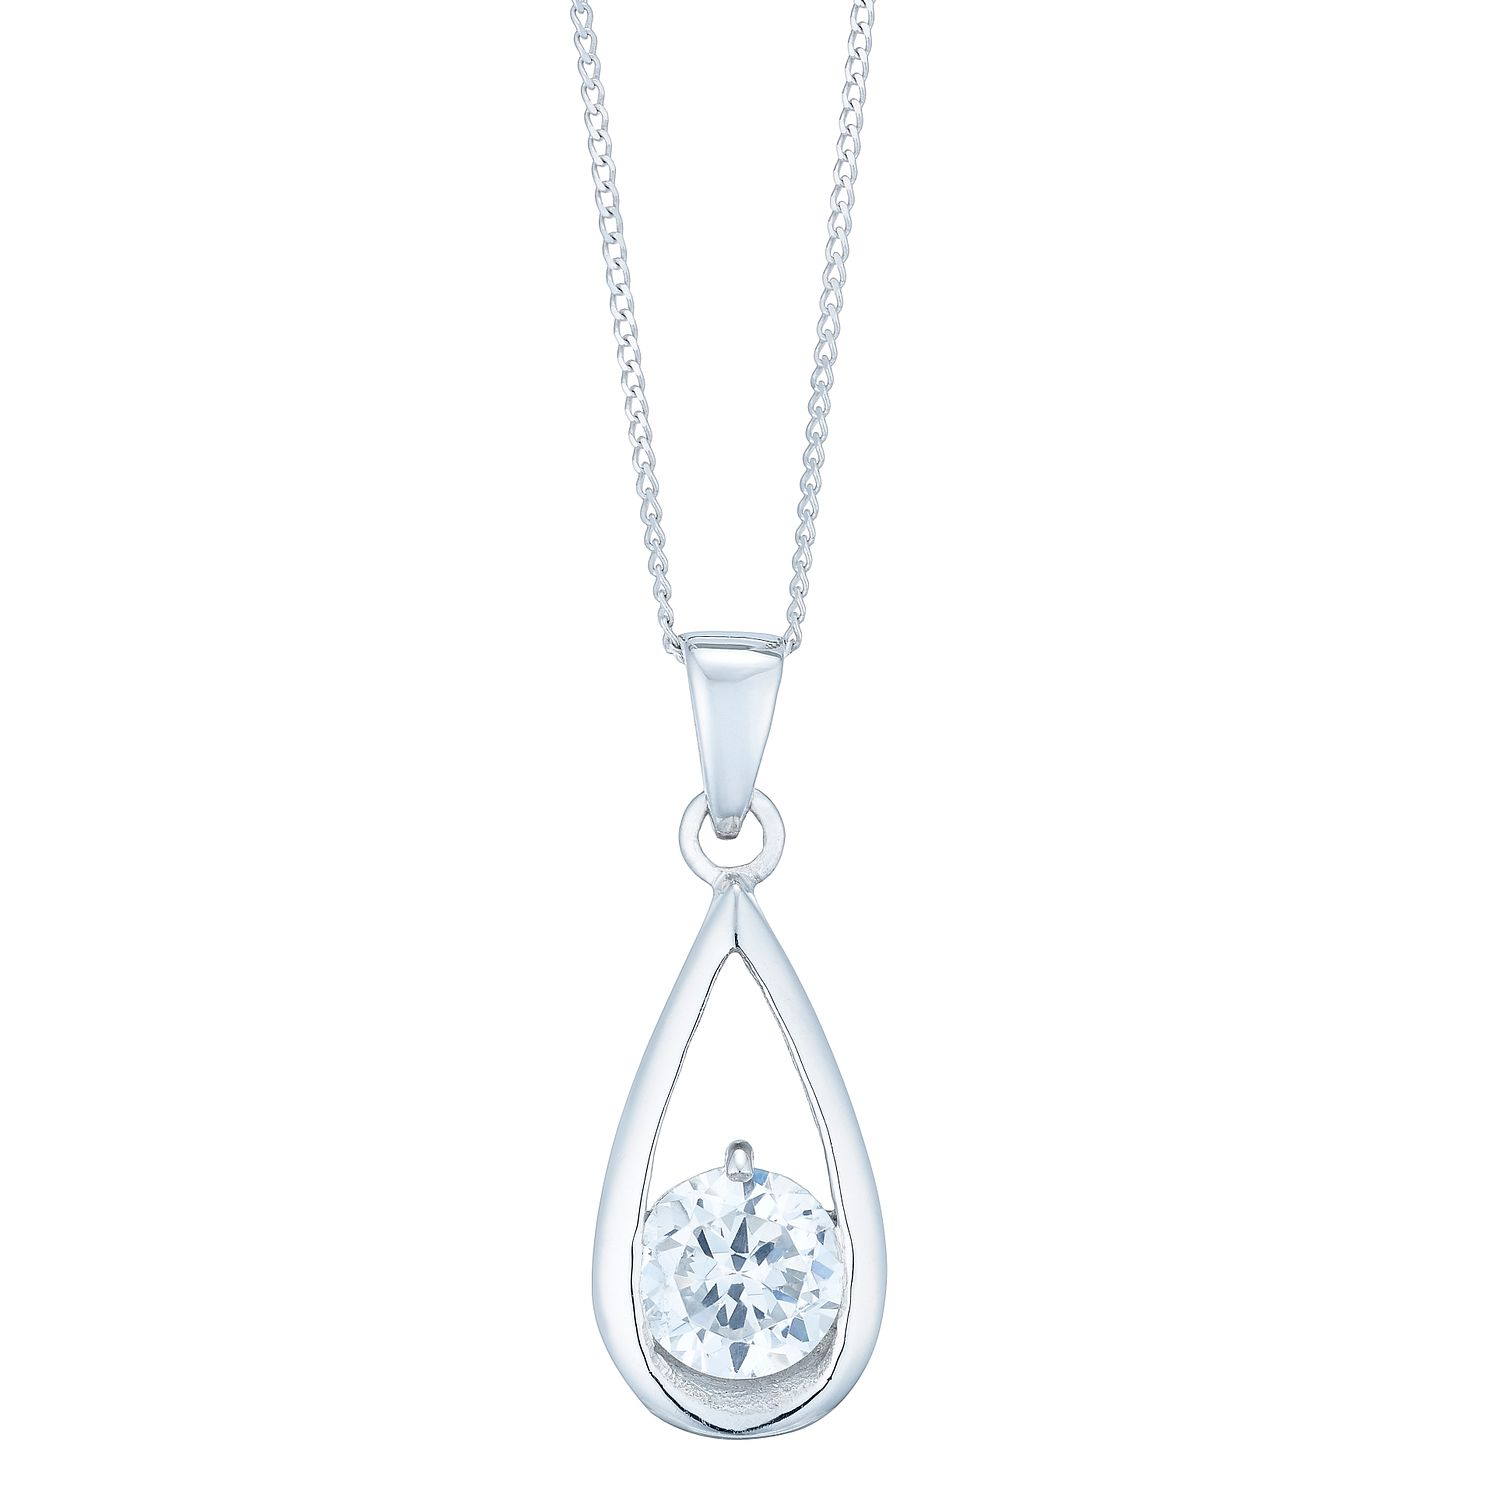 9ct White Gold Cubic Zirconia Teardrop Pendant - Product number 4837037